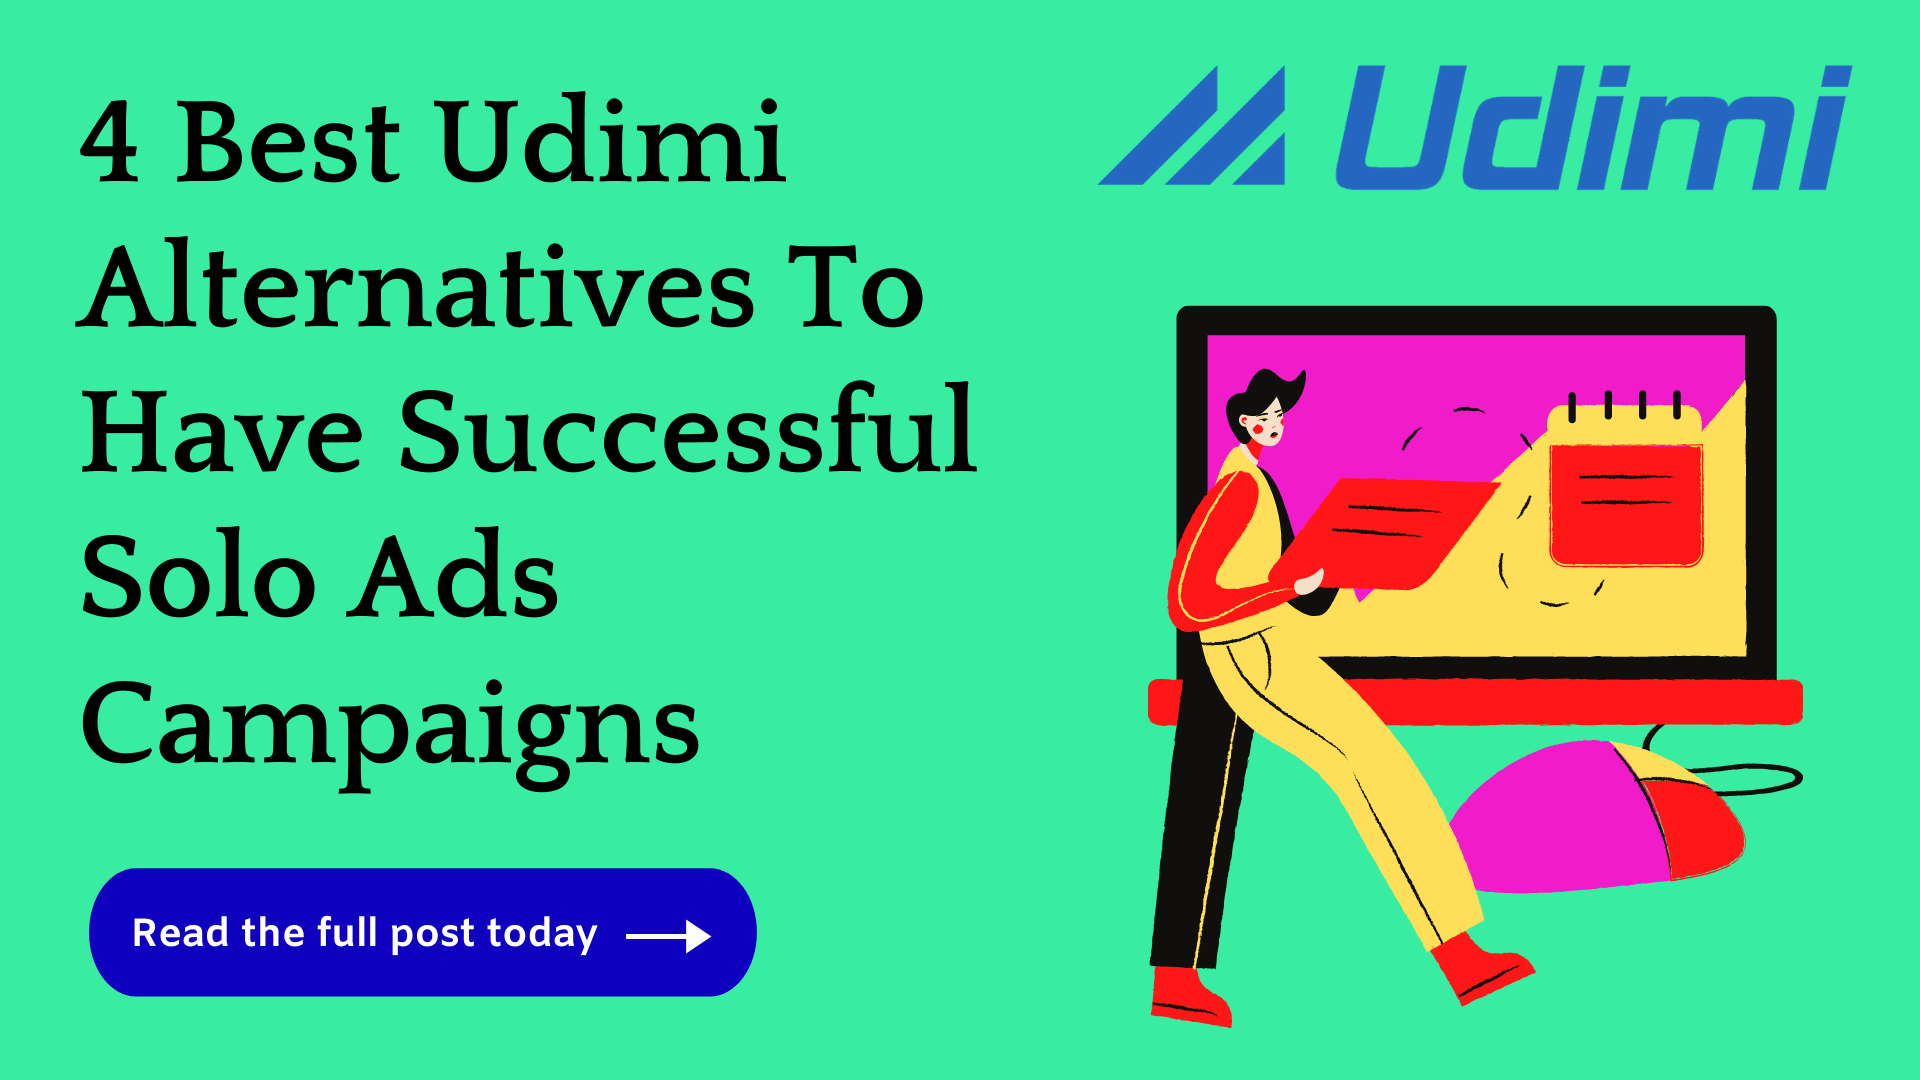 4 Best Udimi Alternatives For Solo Ads